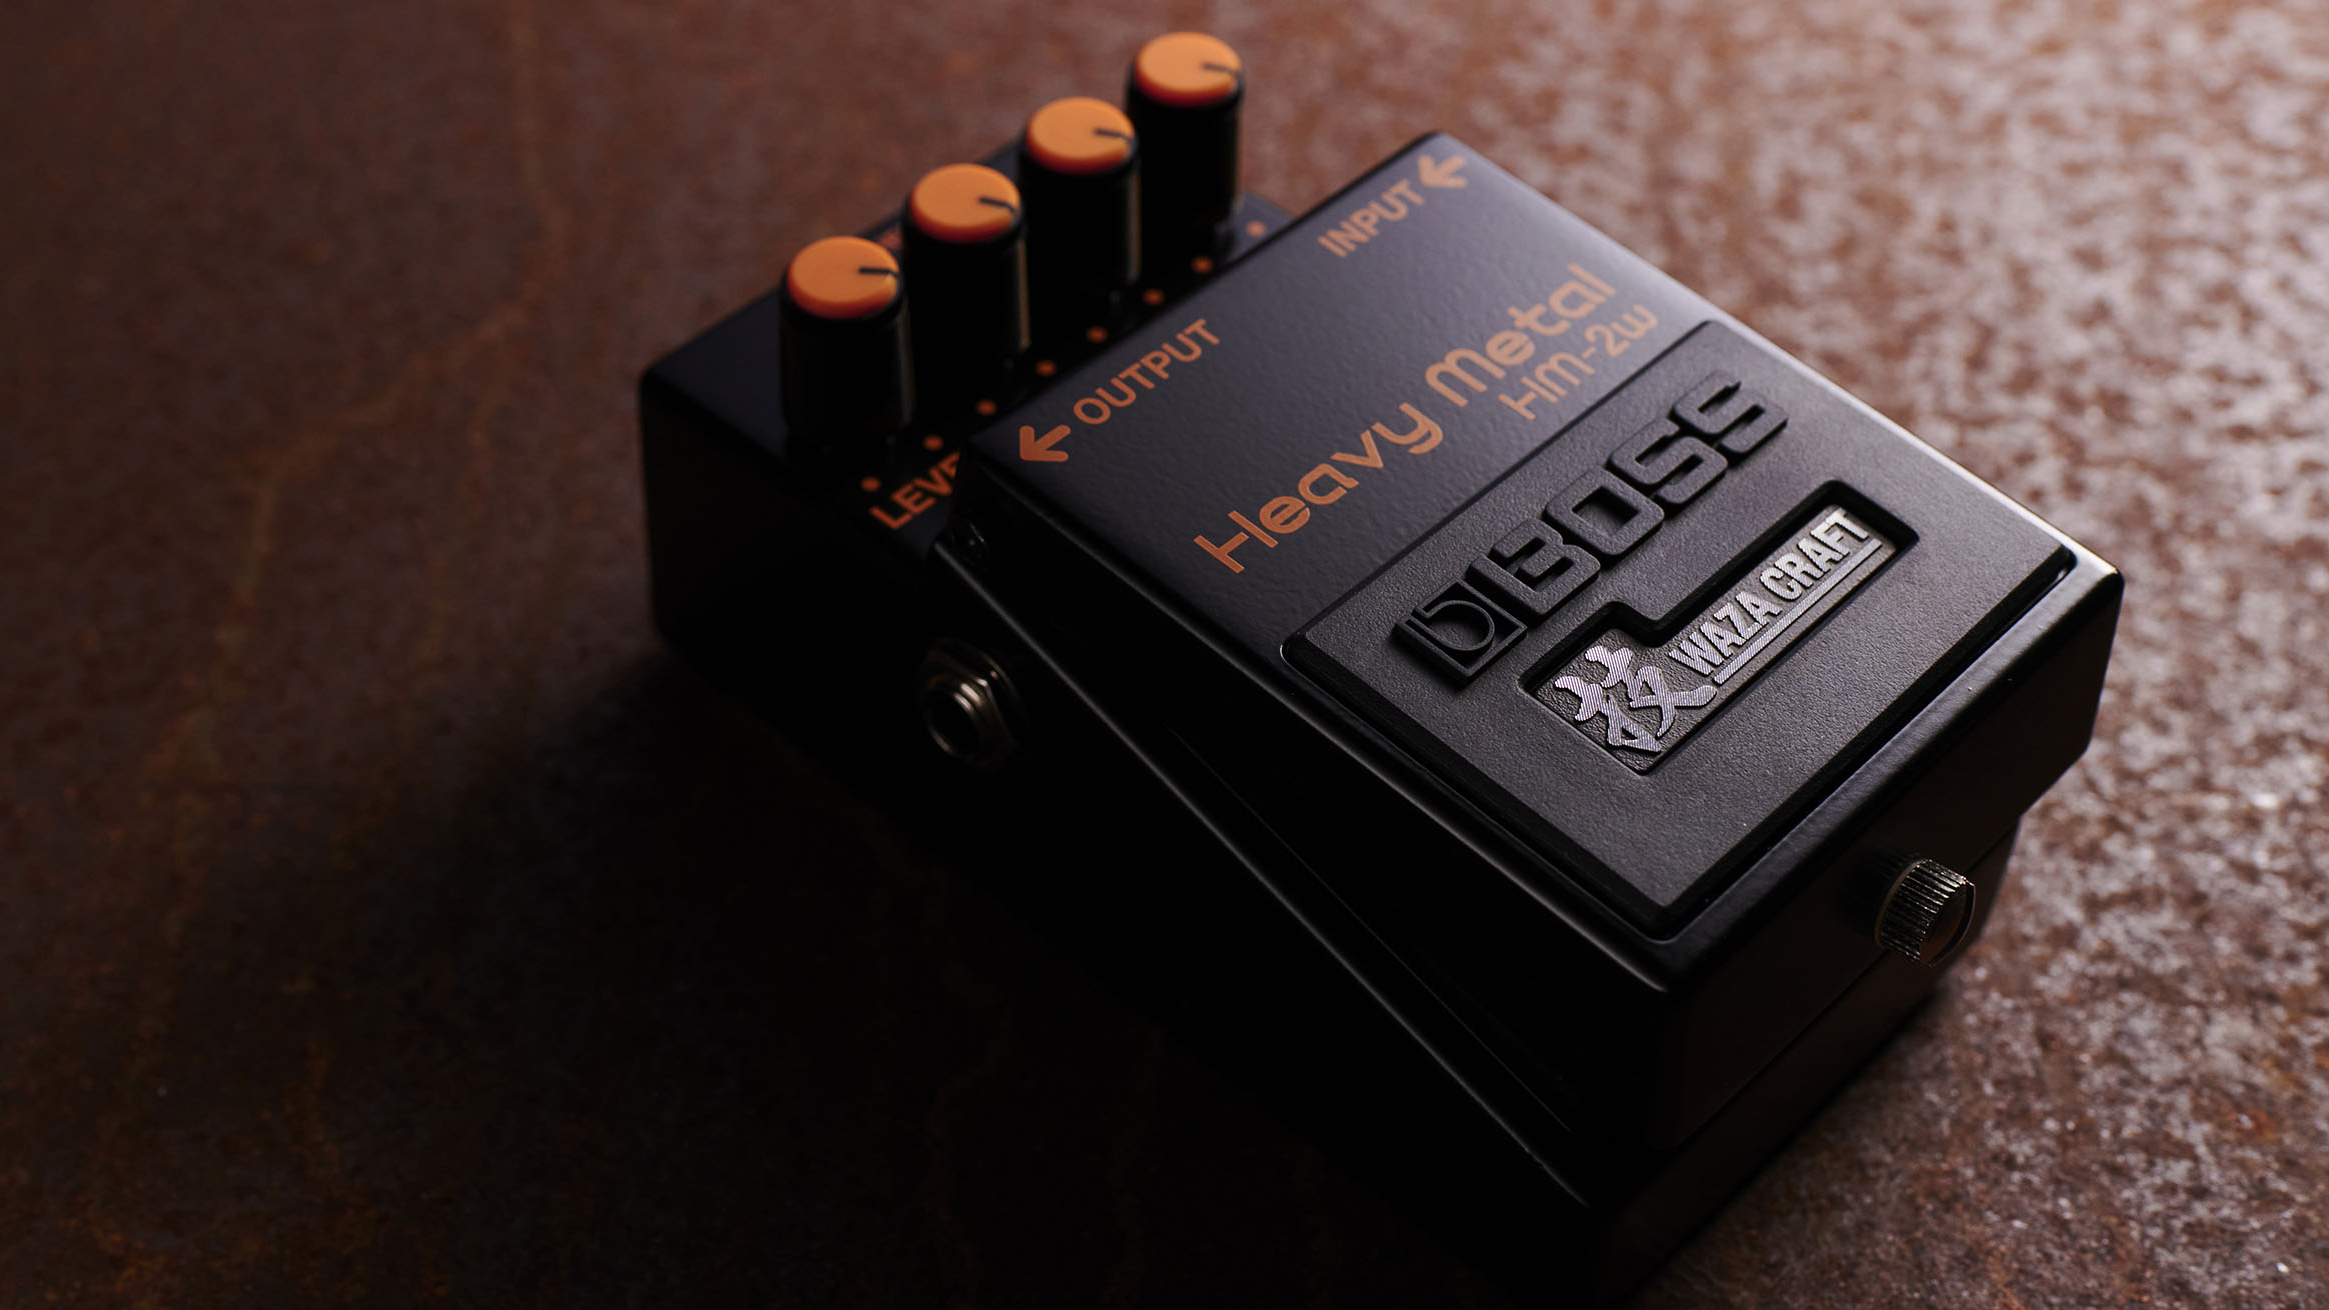 The Boss Heavy Metal pedal is back as the HM-2W and available to preorder now